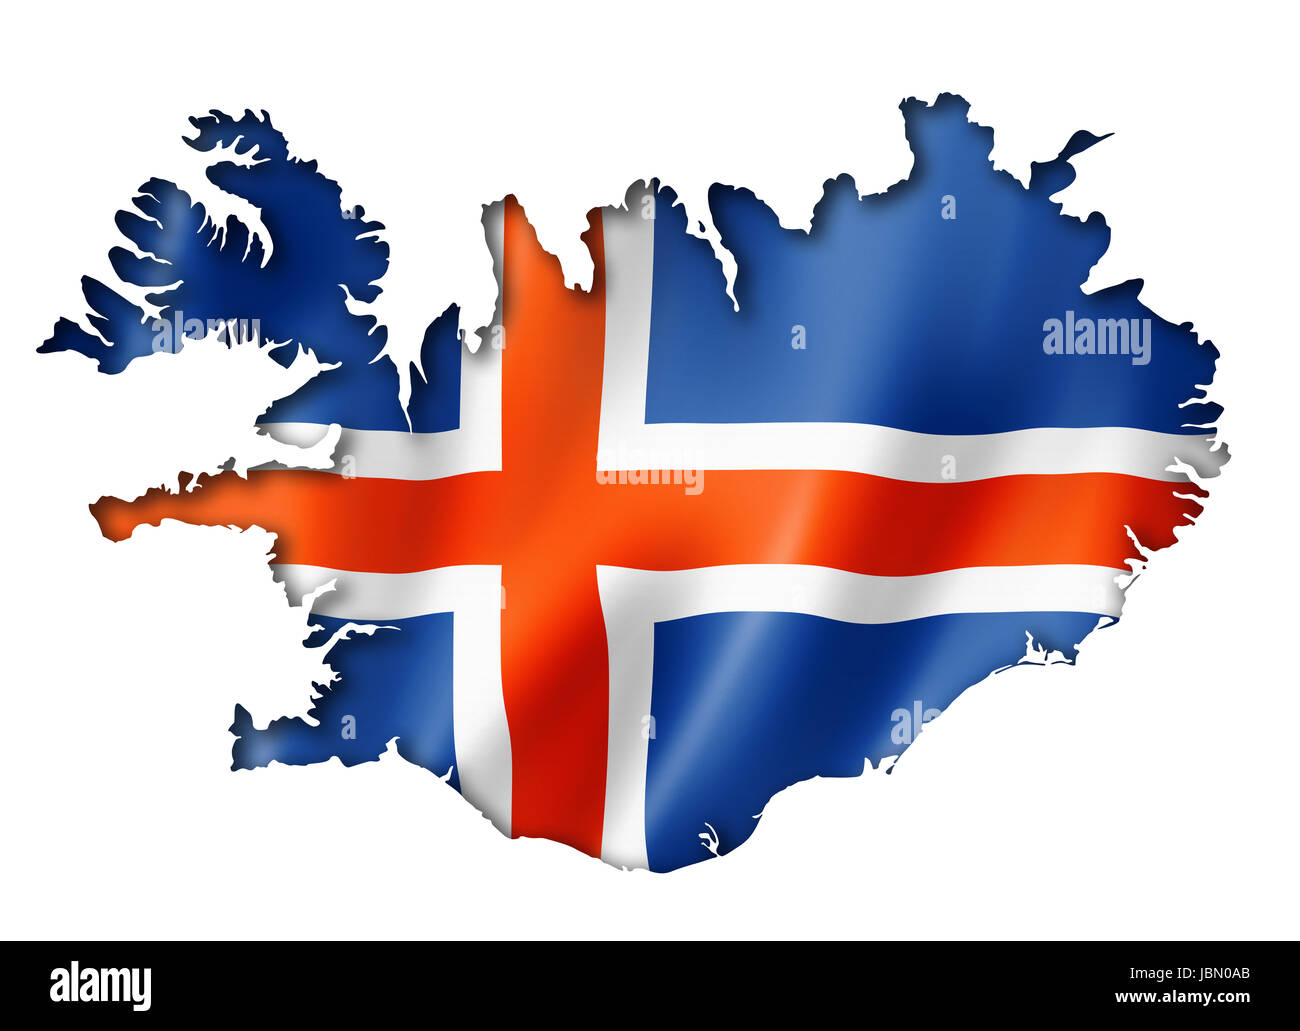 Iceland Map Outline Stock Photos & Iceland Map Outline Stock Images on burma map outline, south pacific islands map outline, norfolk island map outline, poland map outline, german states map outline, cape town south africa map outline, benin map outline, slovakia map outline, greenland map outline, cyprus map outline, the usa map outline, gambia map outline, macau map outline, st croix map outline, mauritania map outline, bangladesh map outline, holy roman empire map outline, far east map outline, russia map outline, aruba map outline,